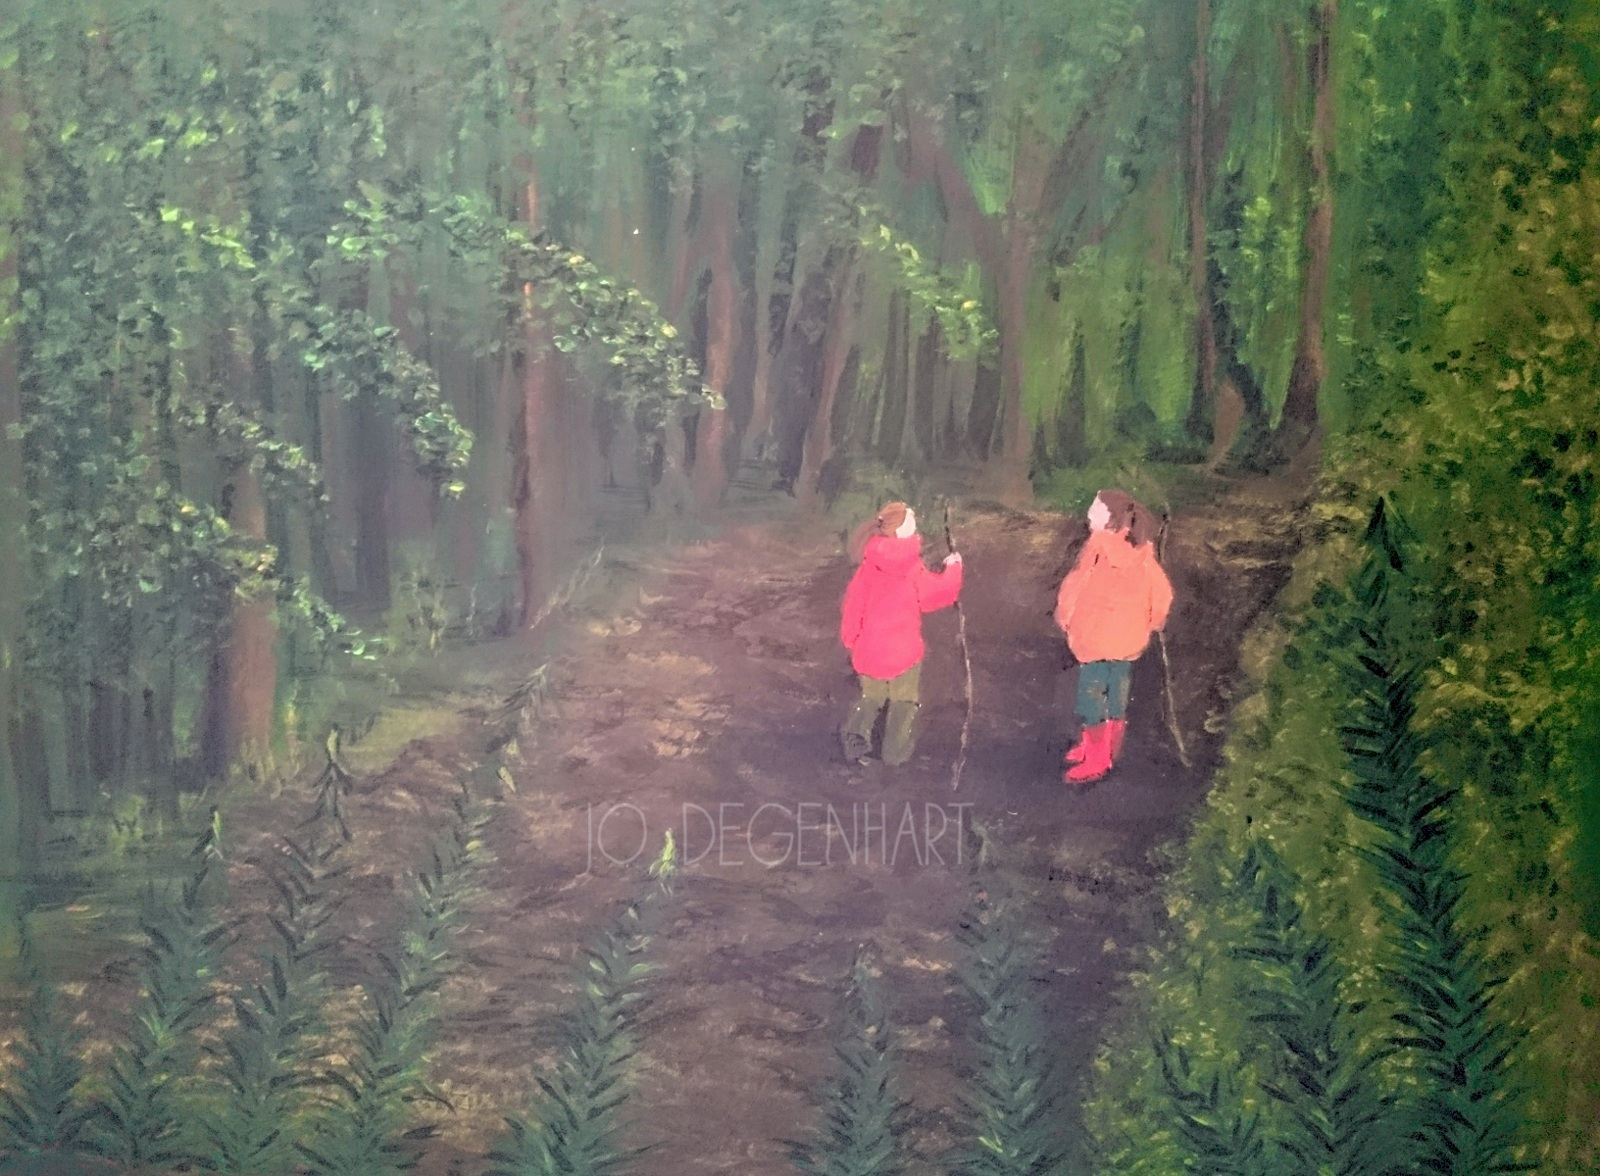 Sisters walking in the Woods by Jo Degenhart